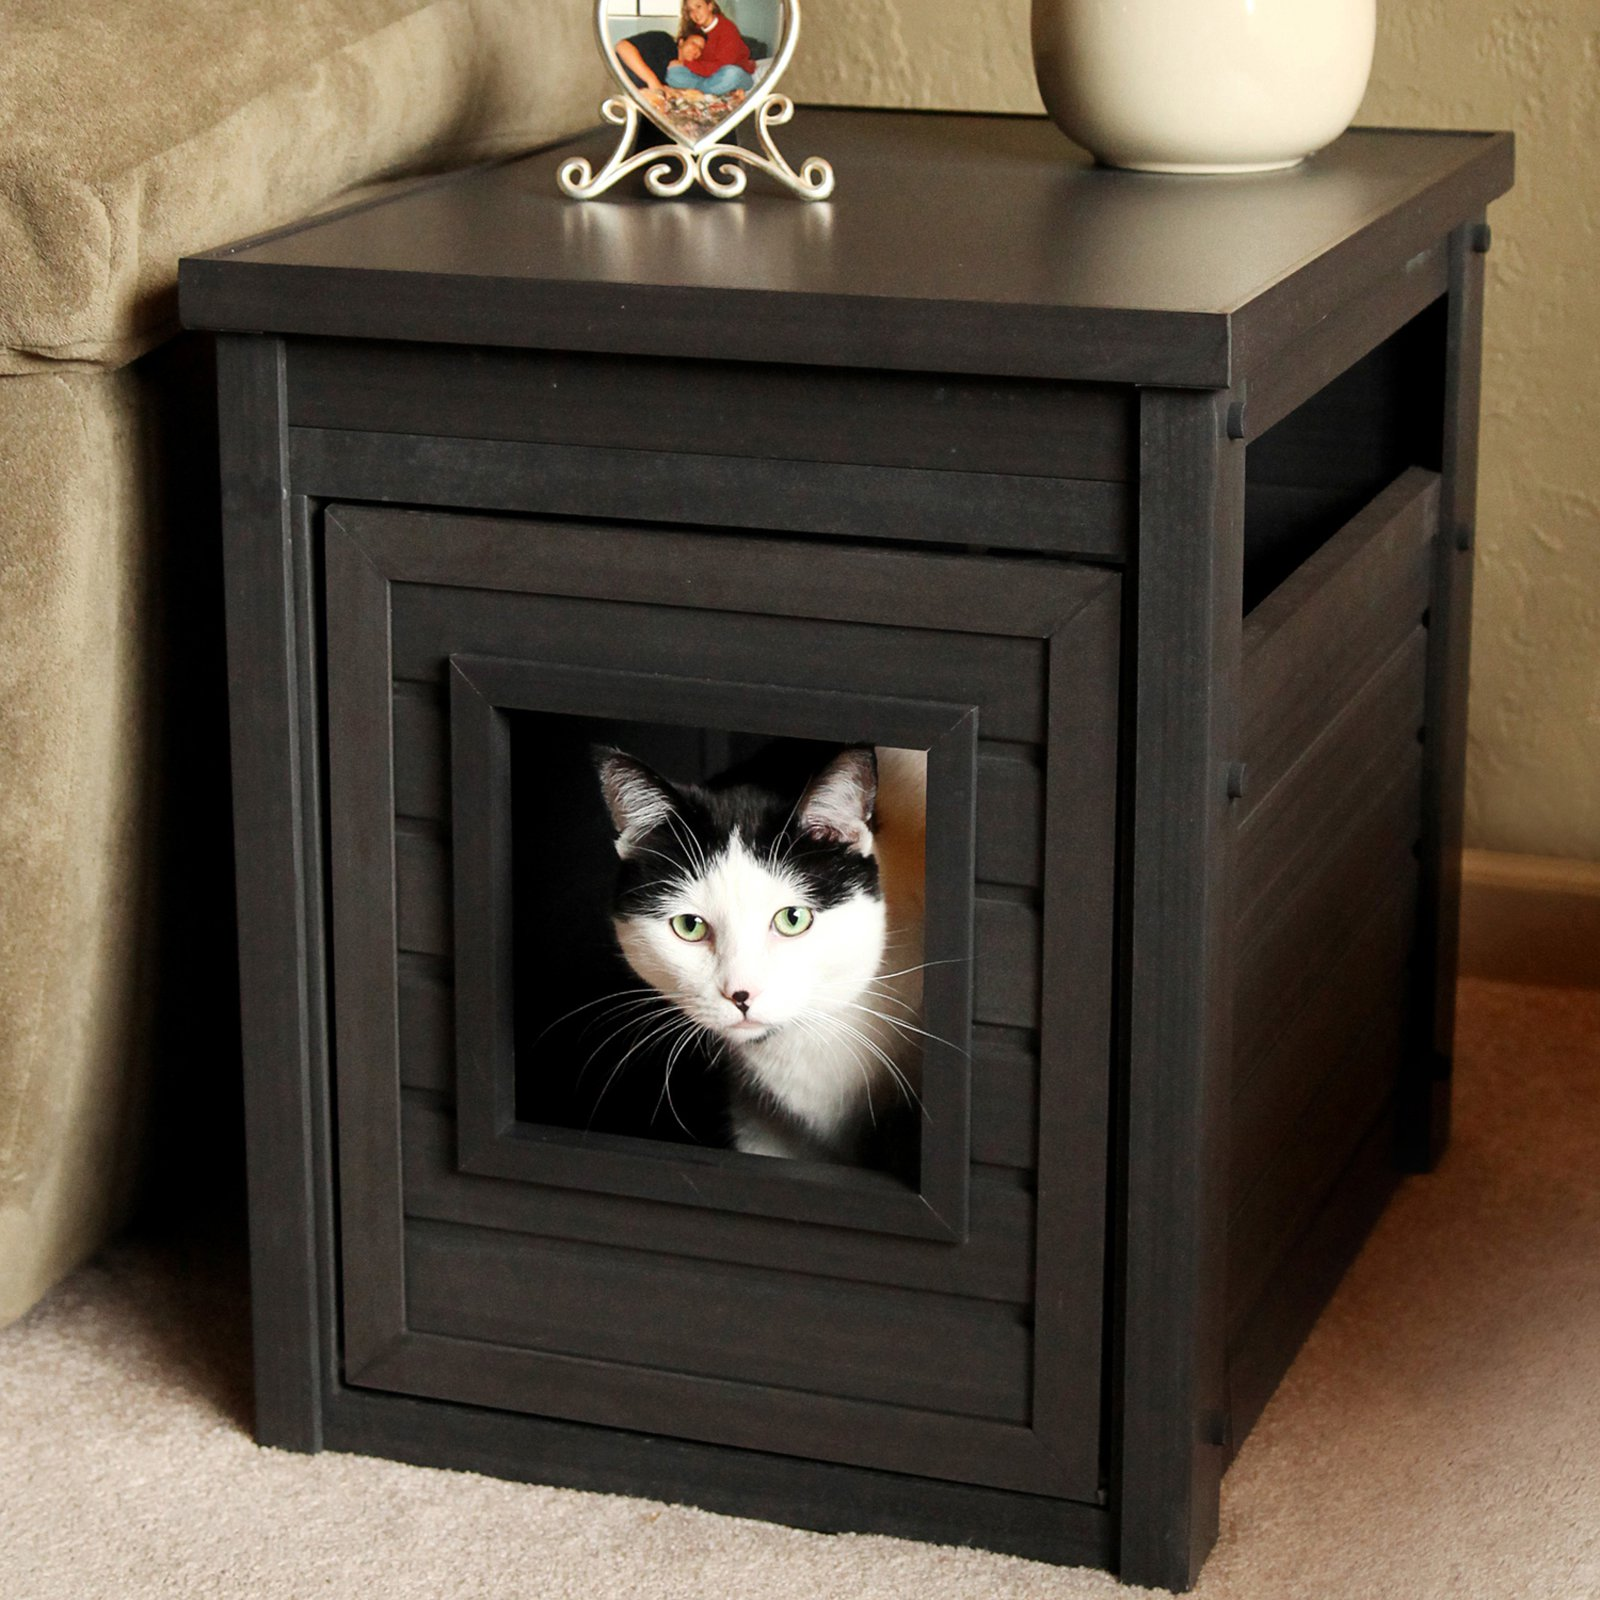 Fancy Litter Boxes | Diy Hidden Cat Litter Box | Hidden Cat Litter Box